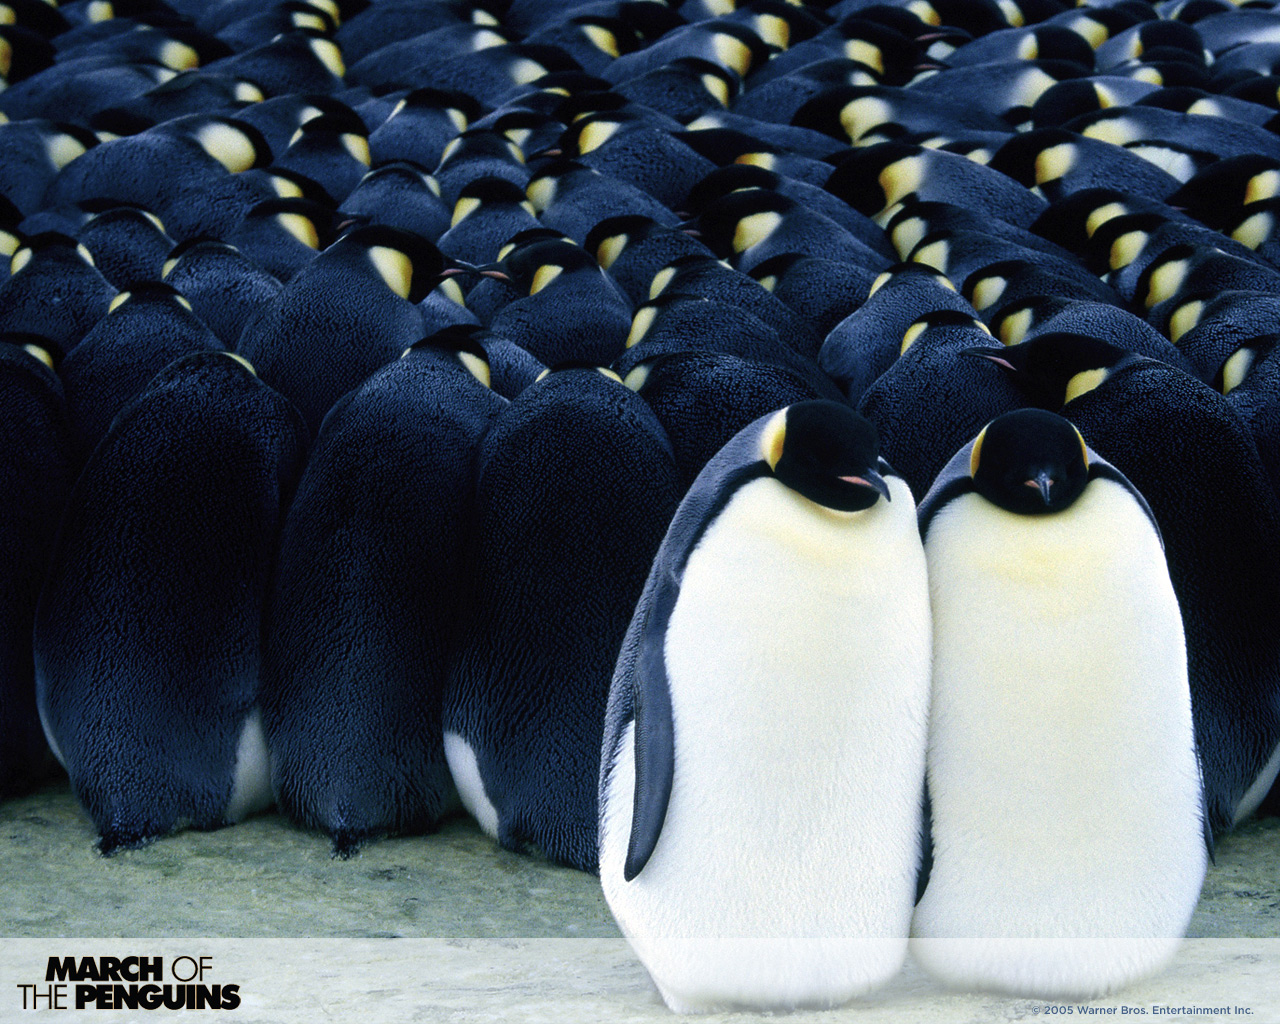 March of the penguins 3